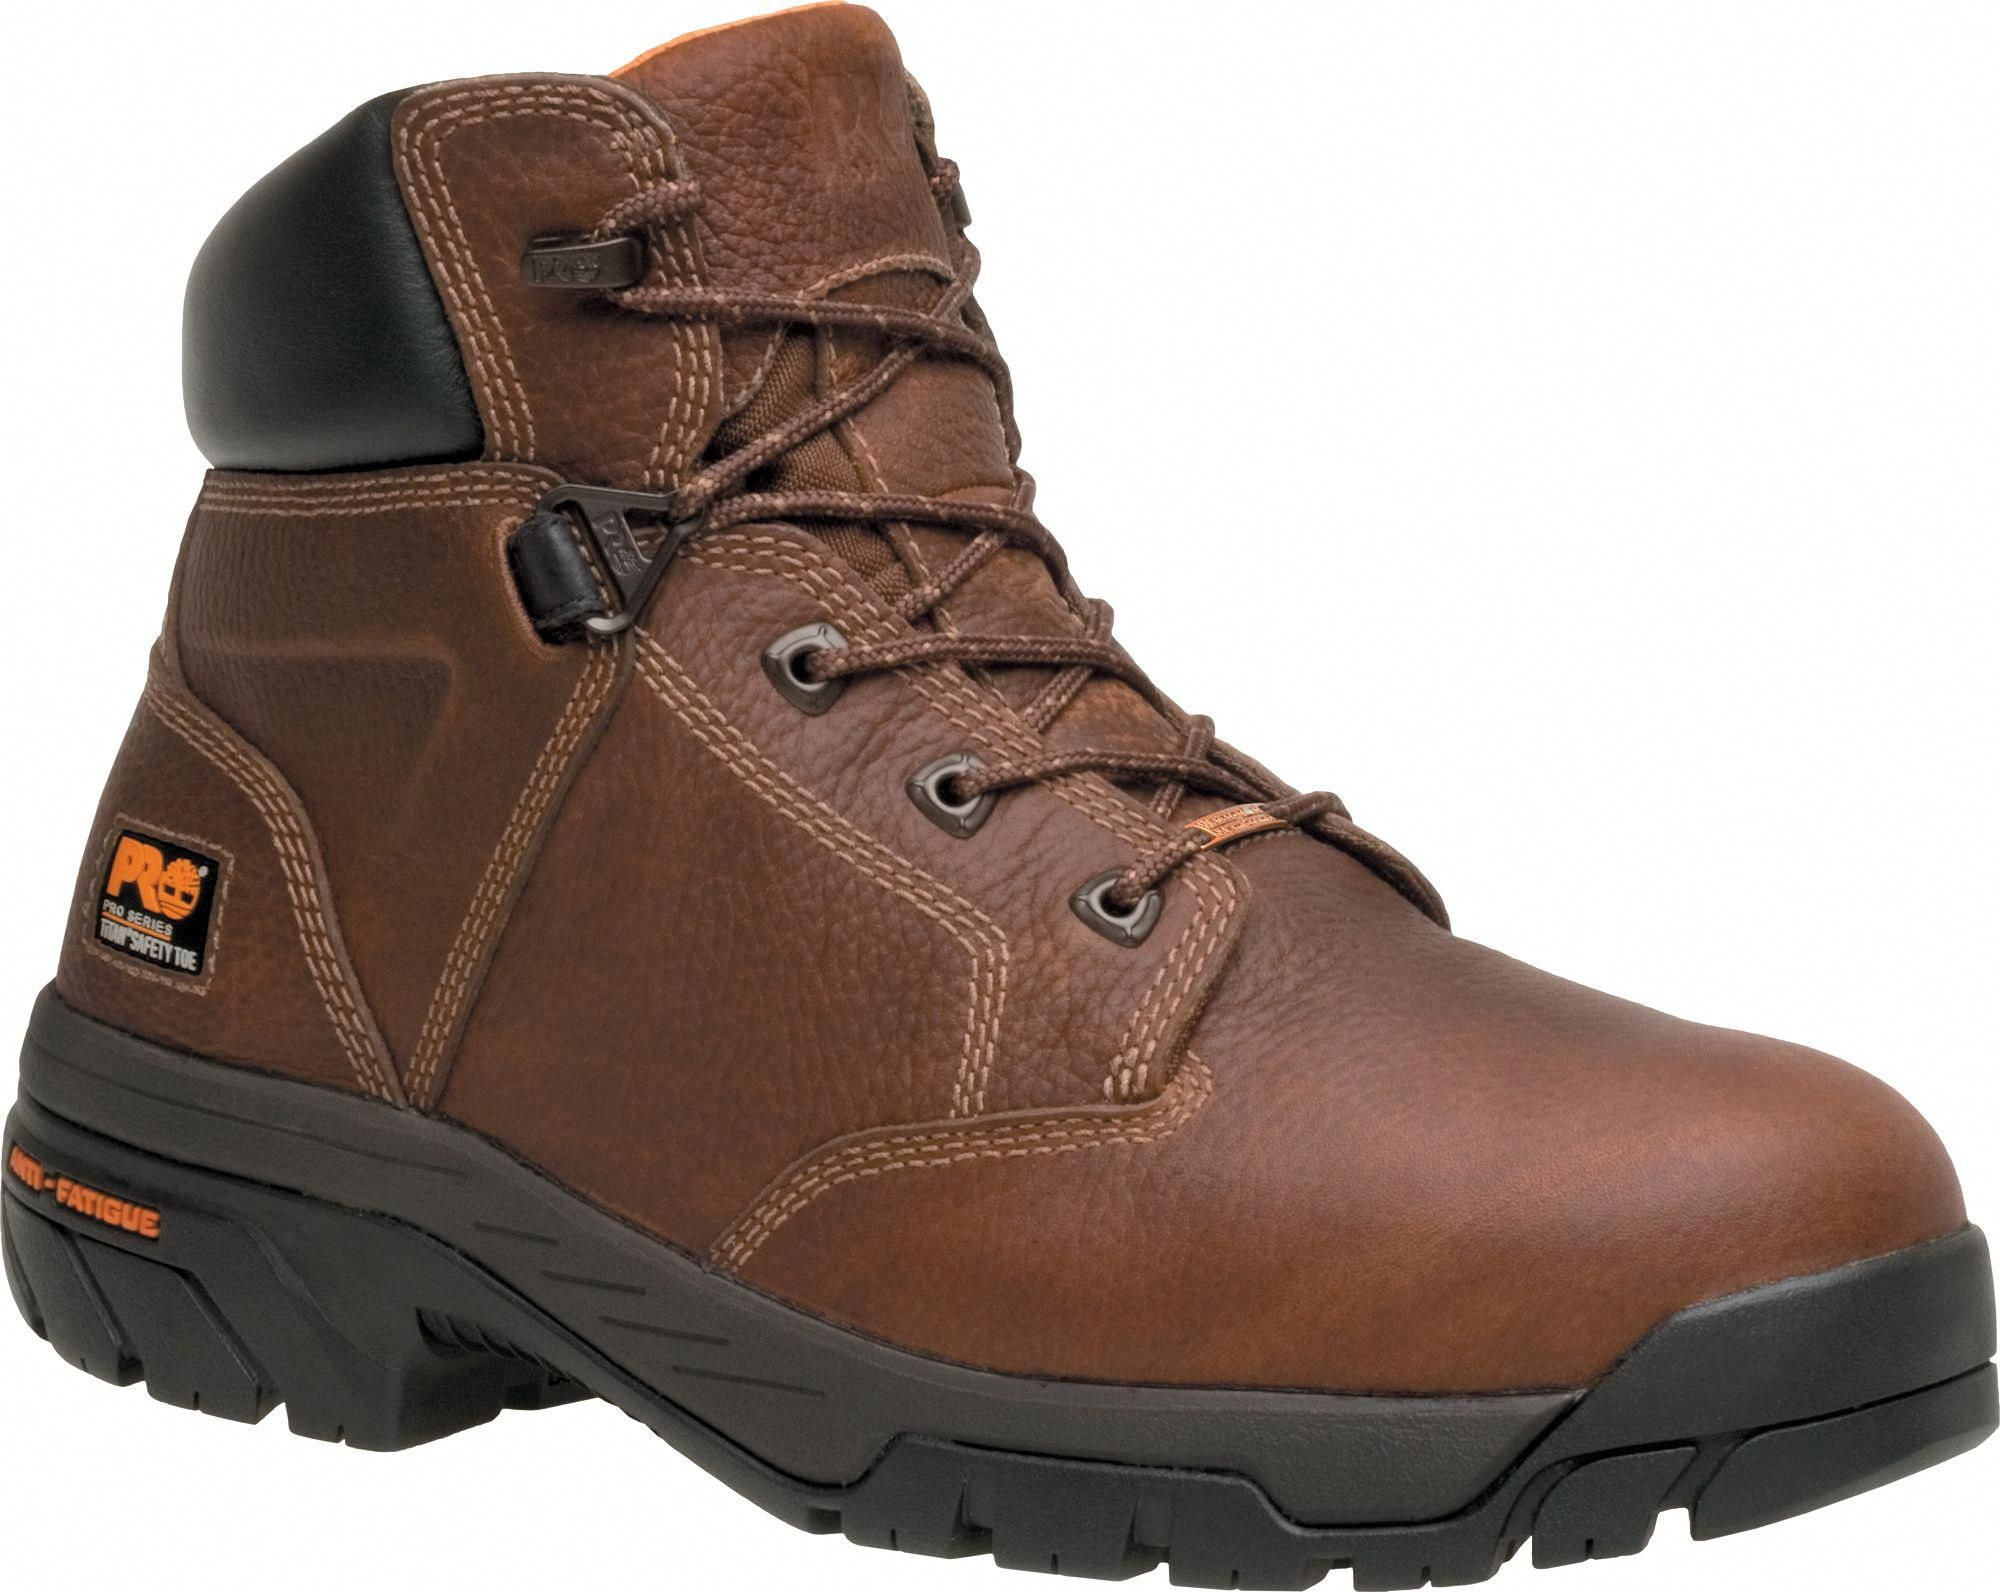 Timberland PRO Men's Helix 6'' Alloy Toe Work Boots, Brown